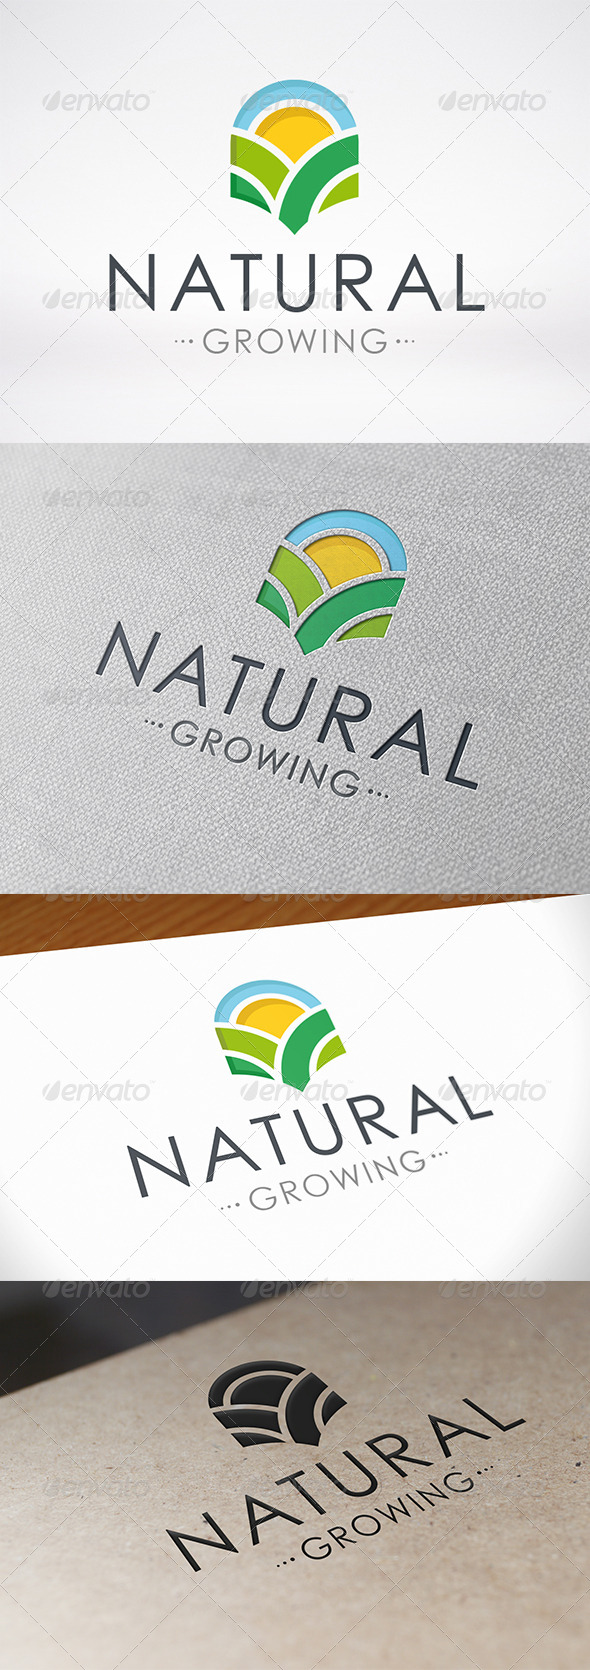 Natural Growing Logo Template - Nature Logo Templates